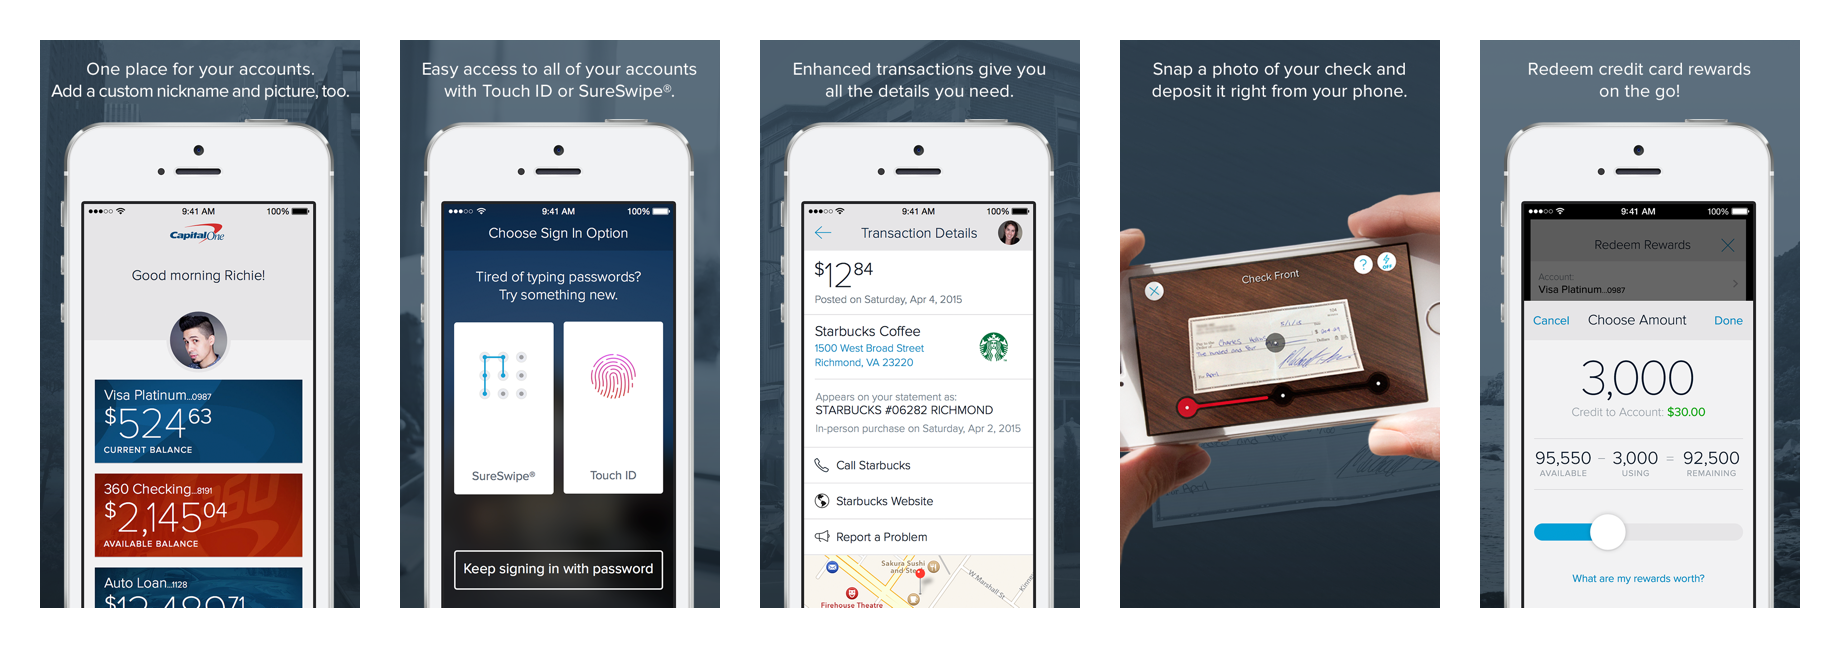 capital one launches an app to manage your home and auto loans